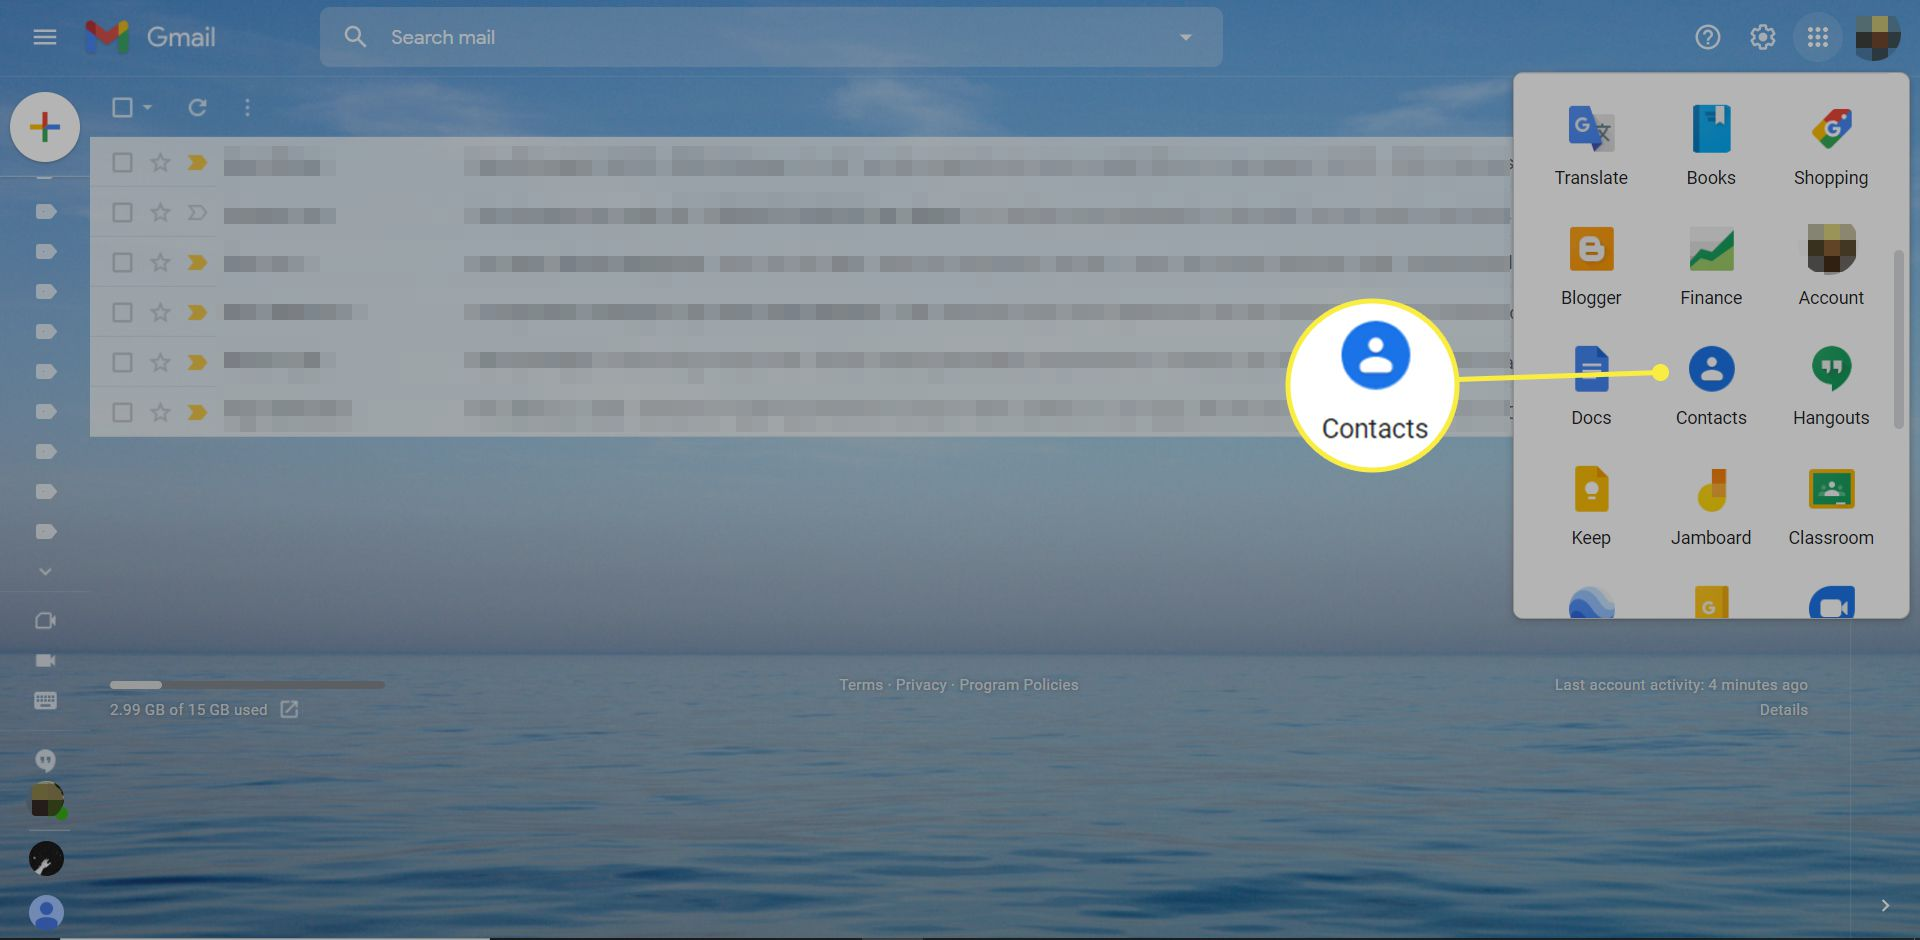 The Google Apps window in Gmail with the Contacts app highlighted